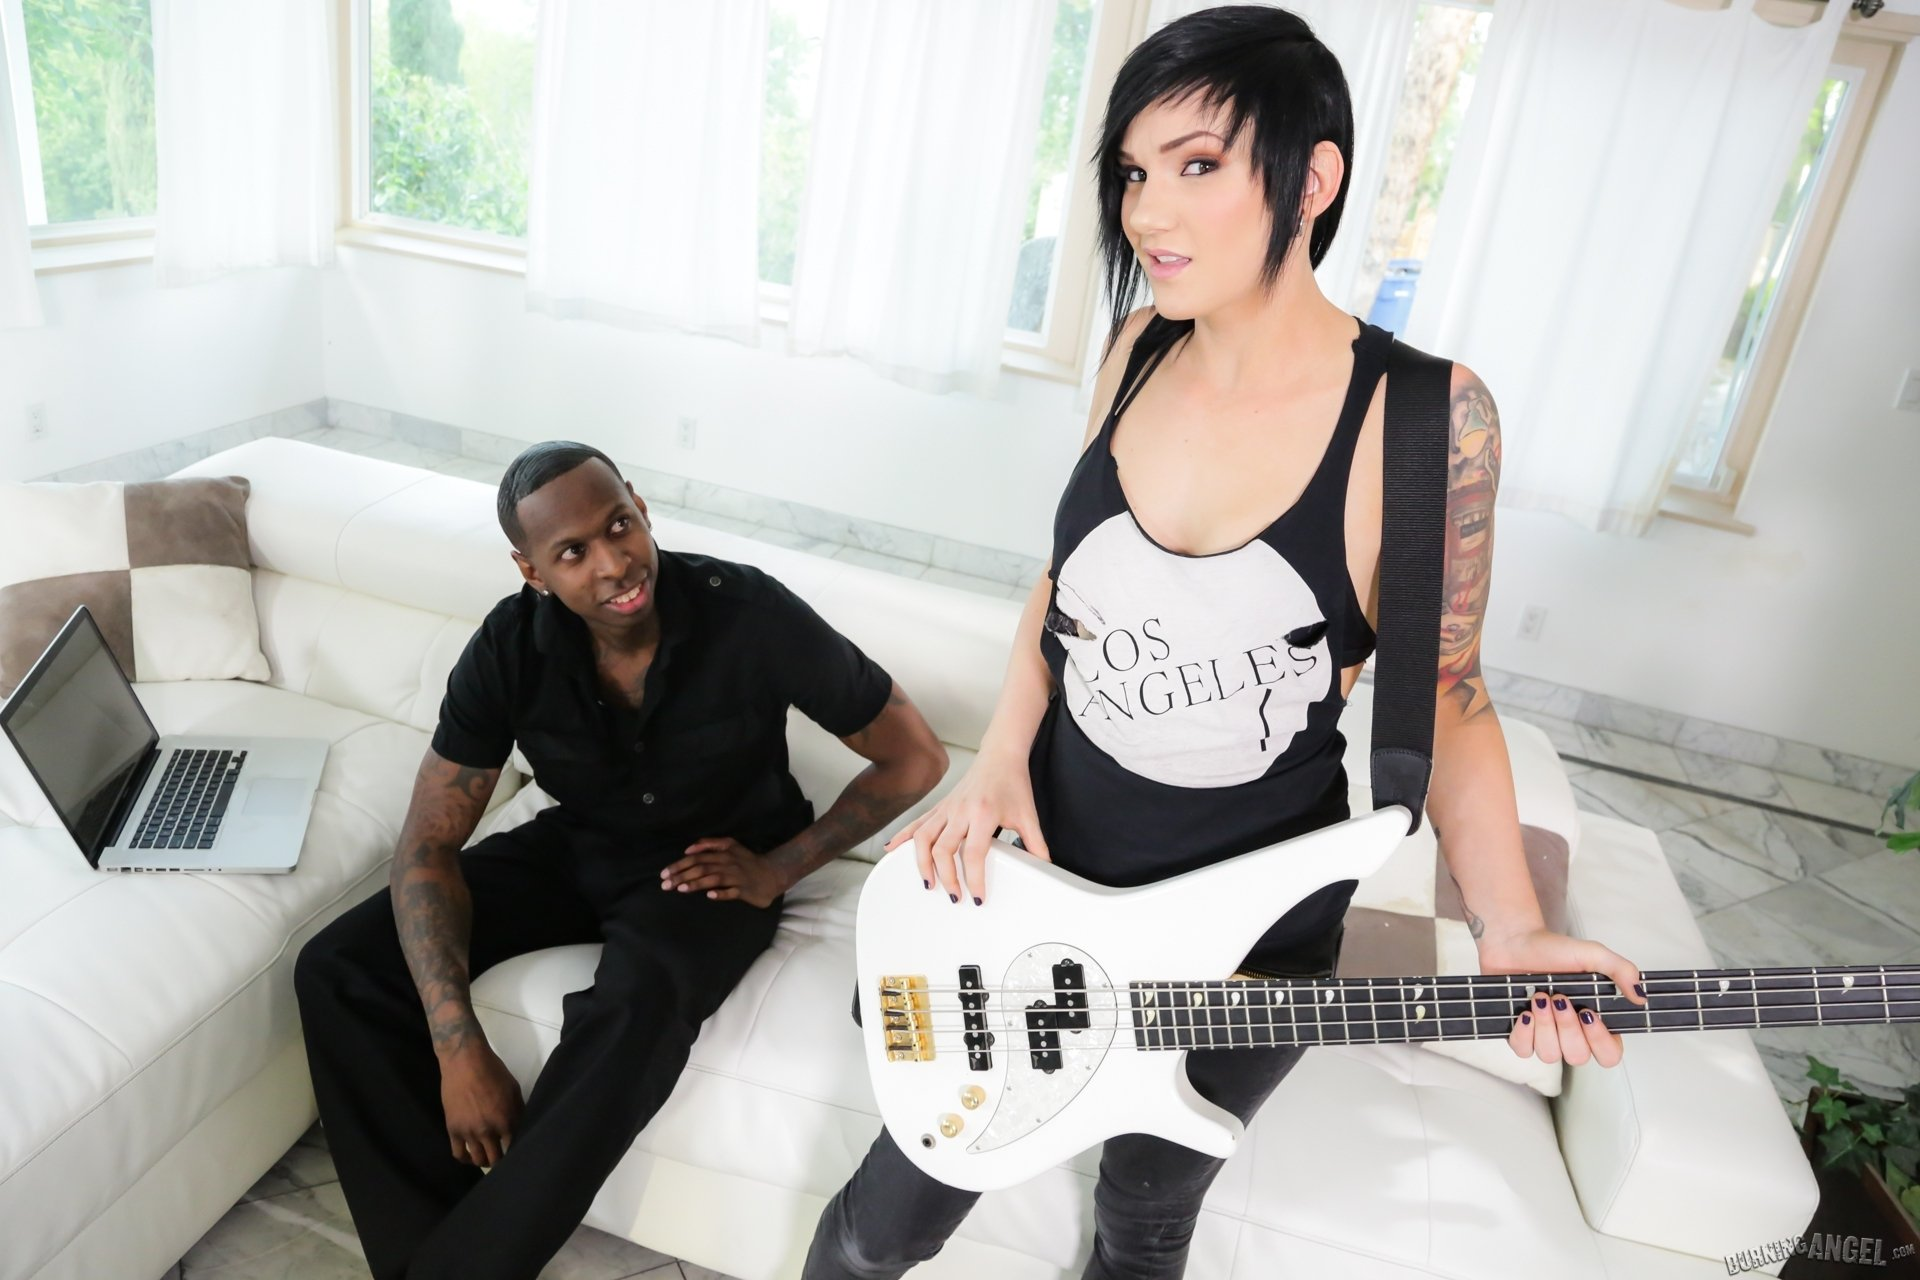 Excellent idea Naked guitar gothic congratulate, this